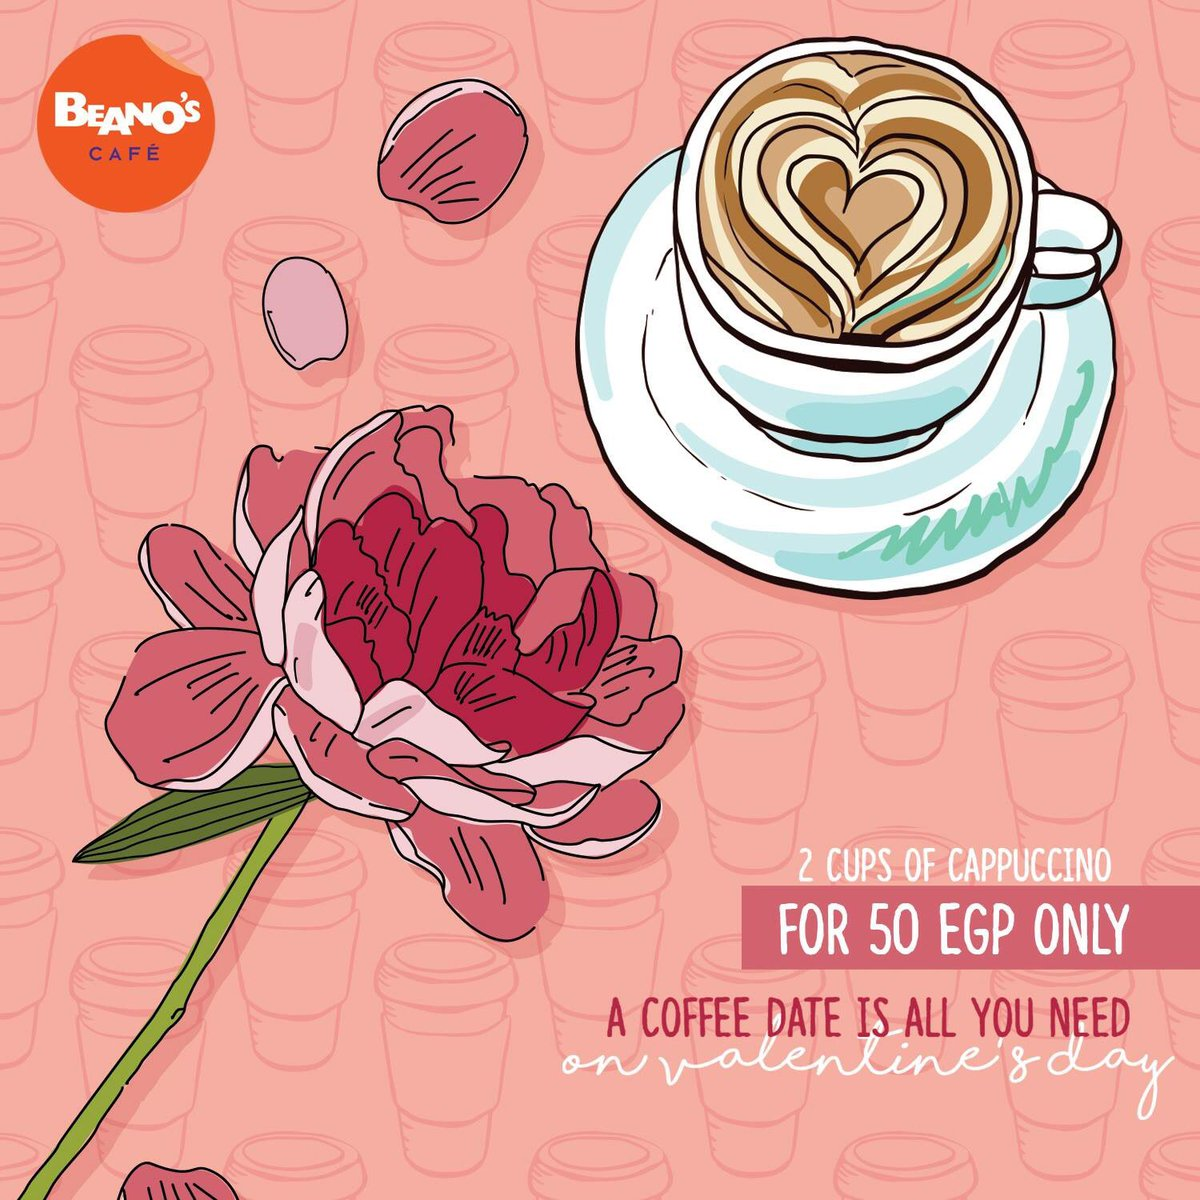 If you want fill your heart with Coffee on Valentine's day, we've made that easier with our Coffee date offer! Enjoy two cups of cappuccino for only 50 EGP, and enjoy them through out the whole day through keeping your receipt! Ready for some coffee talk? https://t.co/krbc7mjV6D